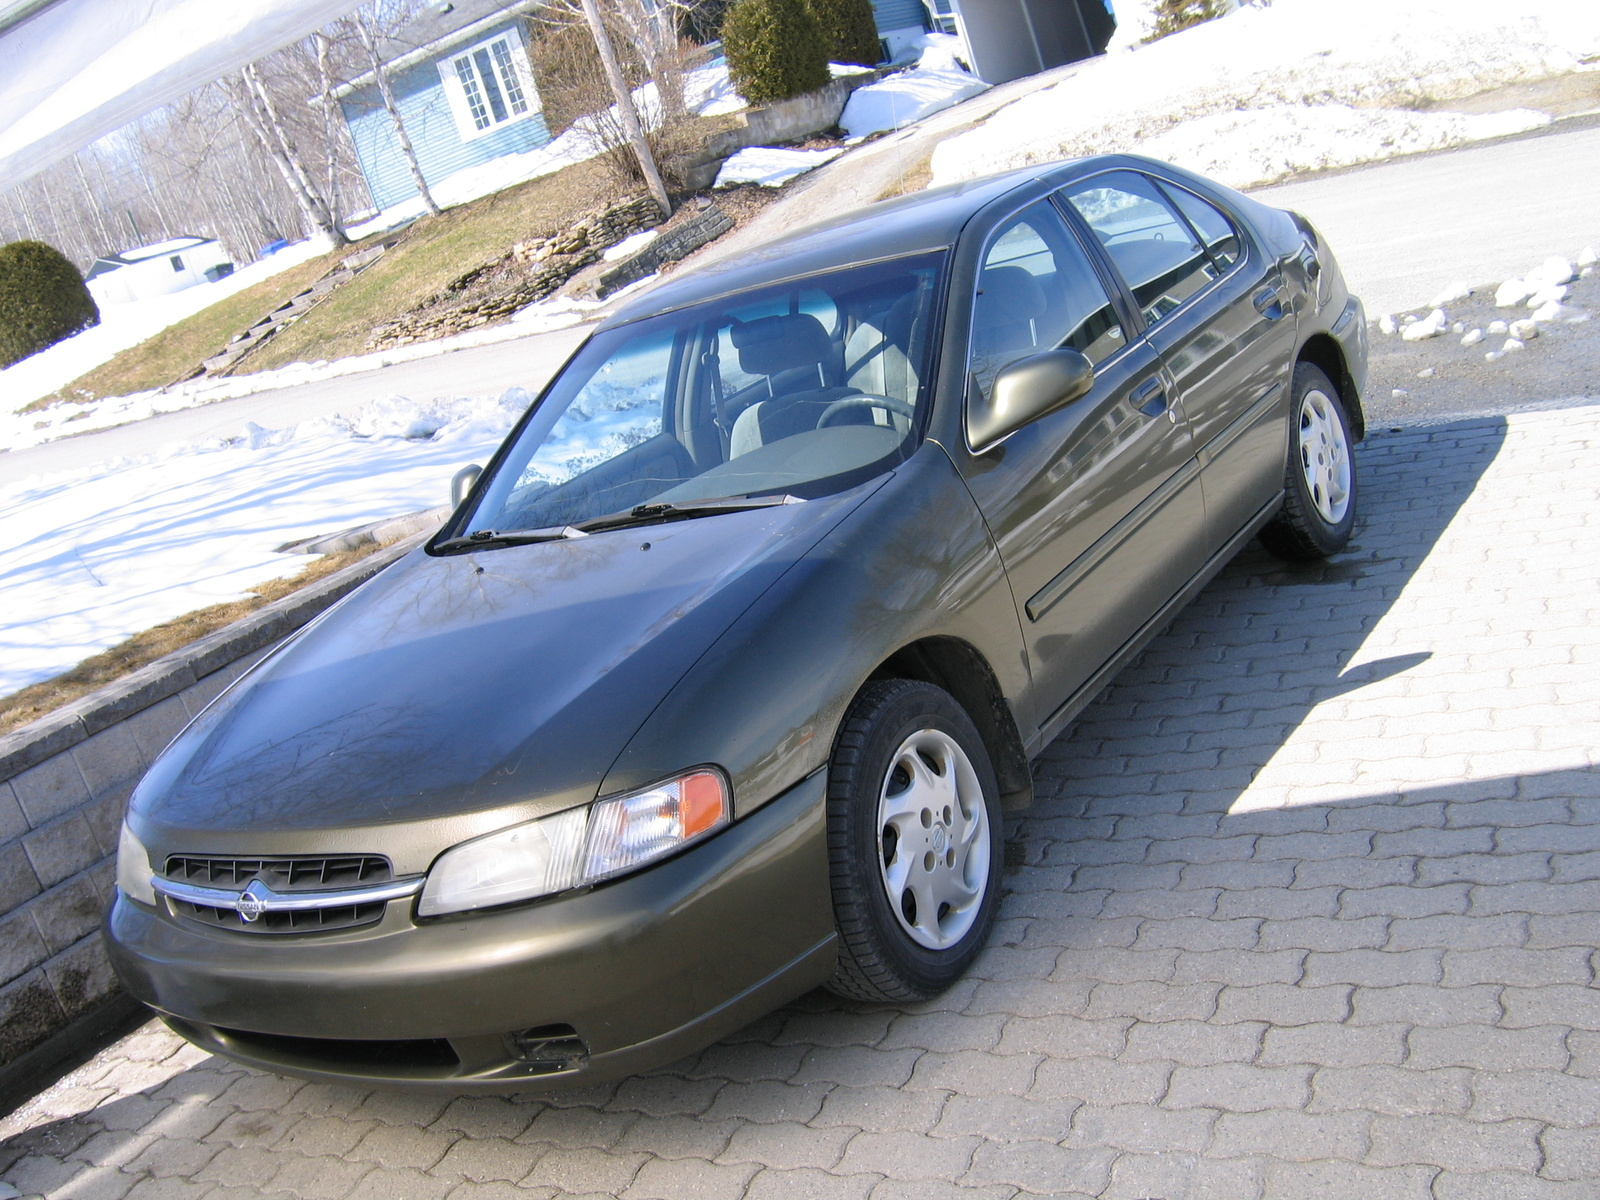 1998 Nissan Altima 4 Dr GXE Sedan picture